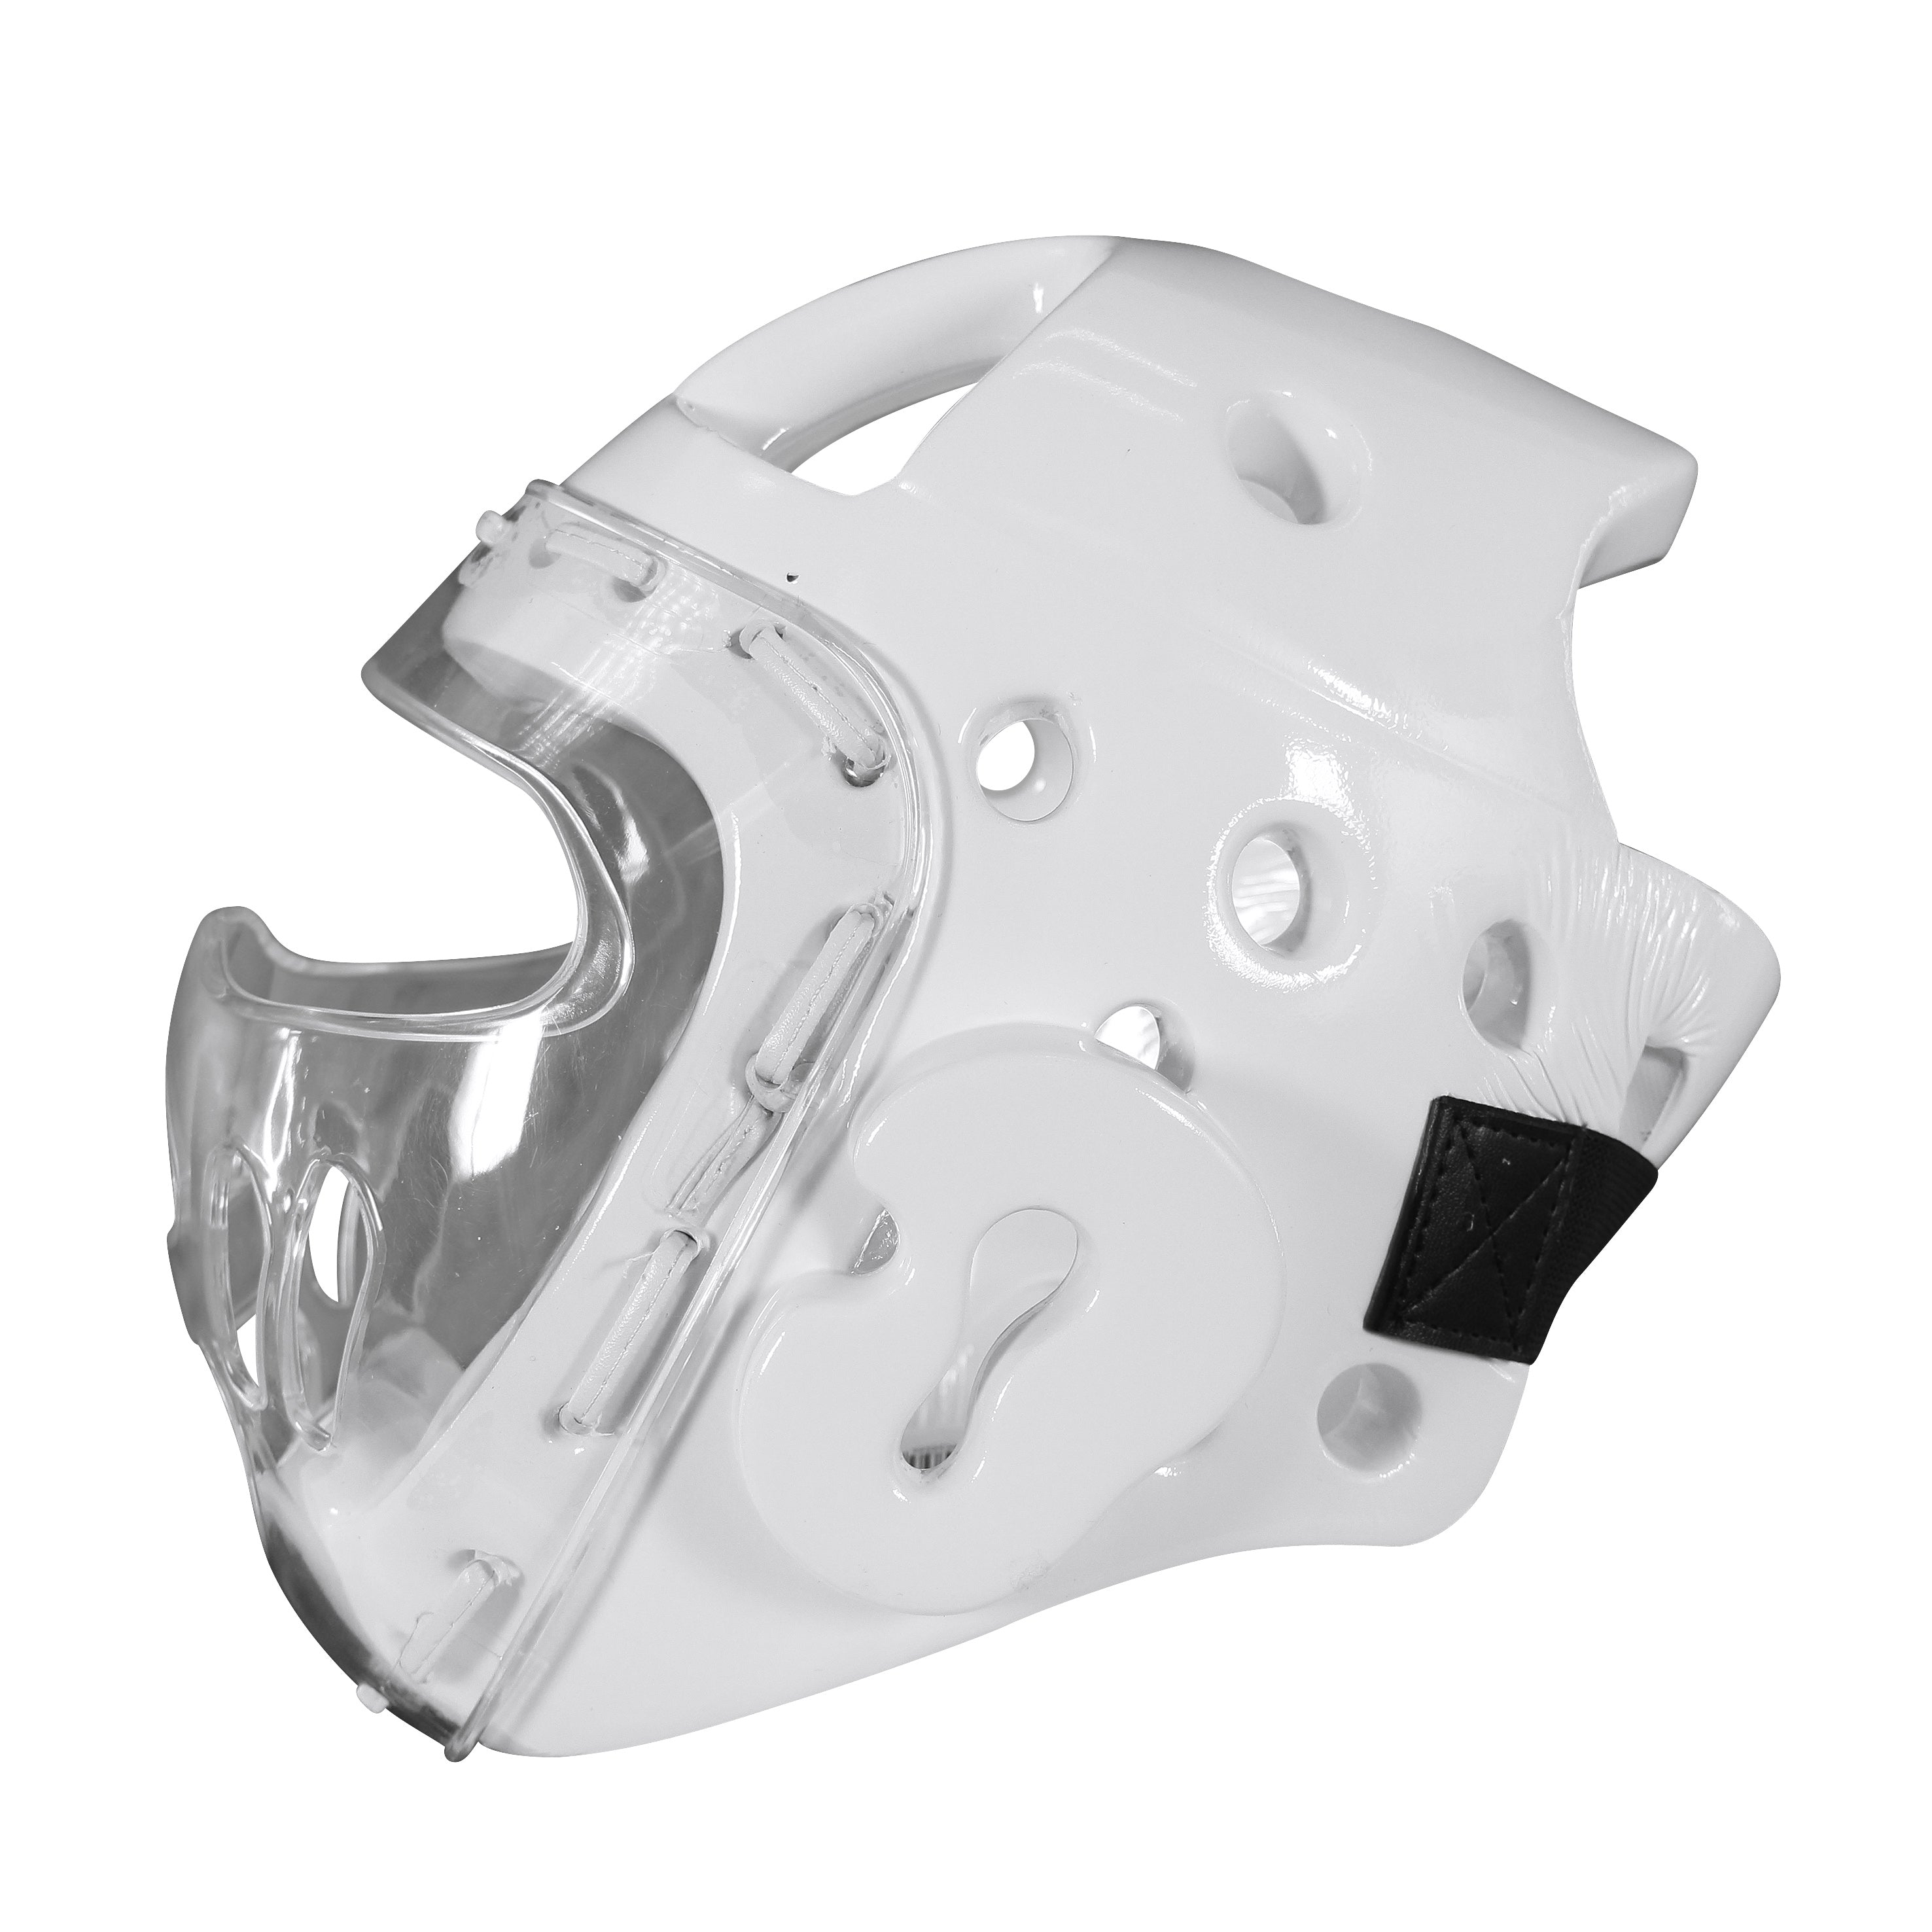 Adidas Head Guard with Face Mask